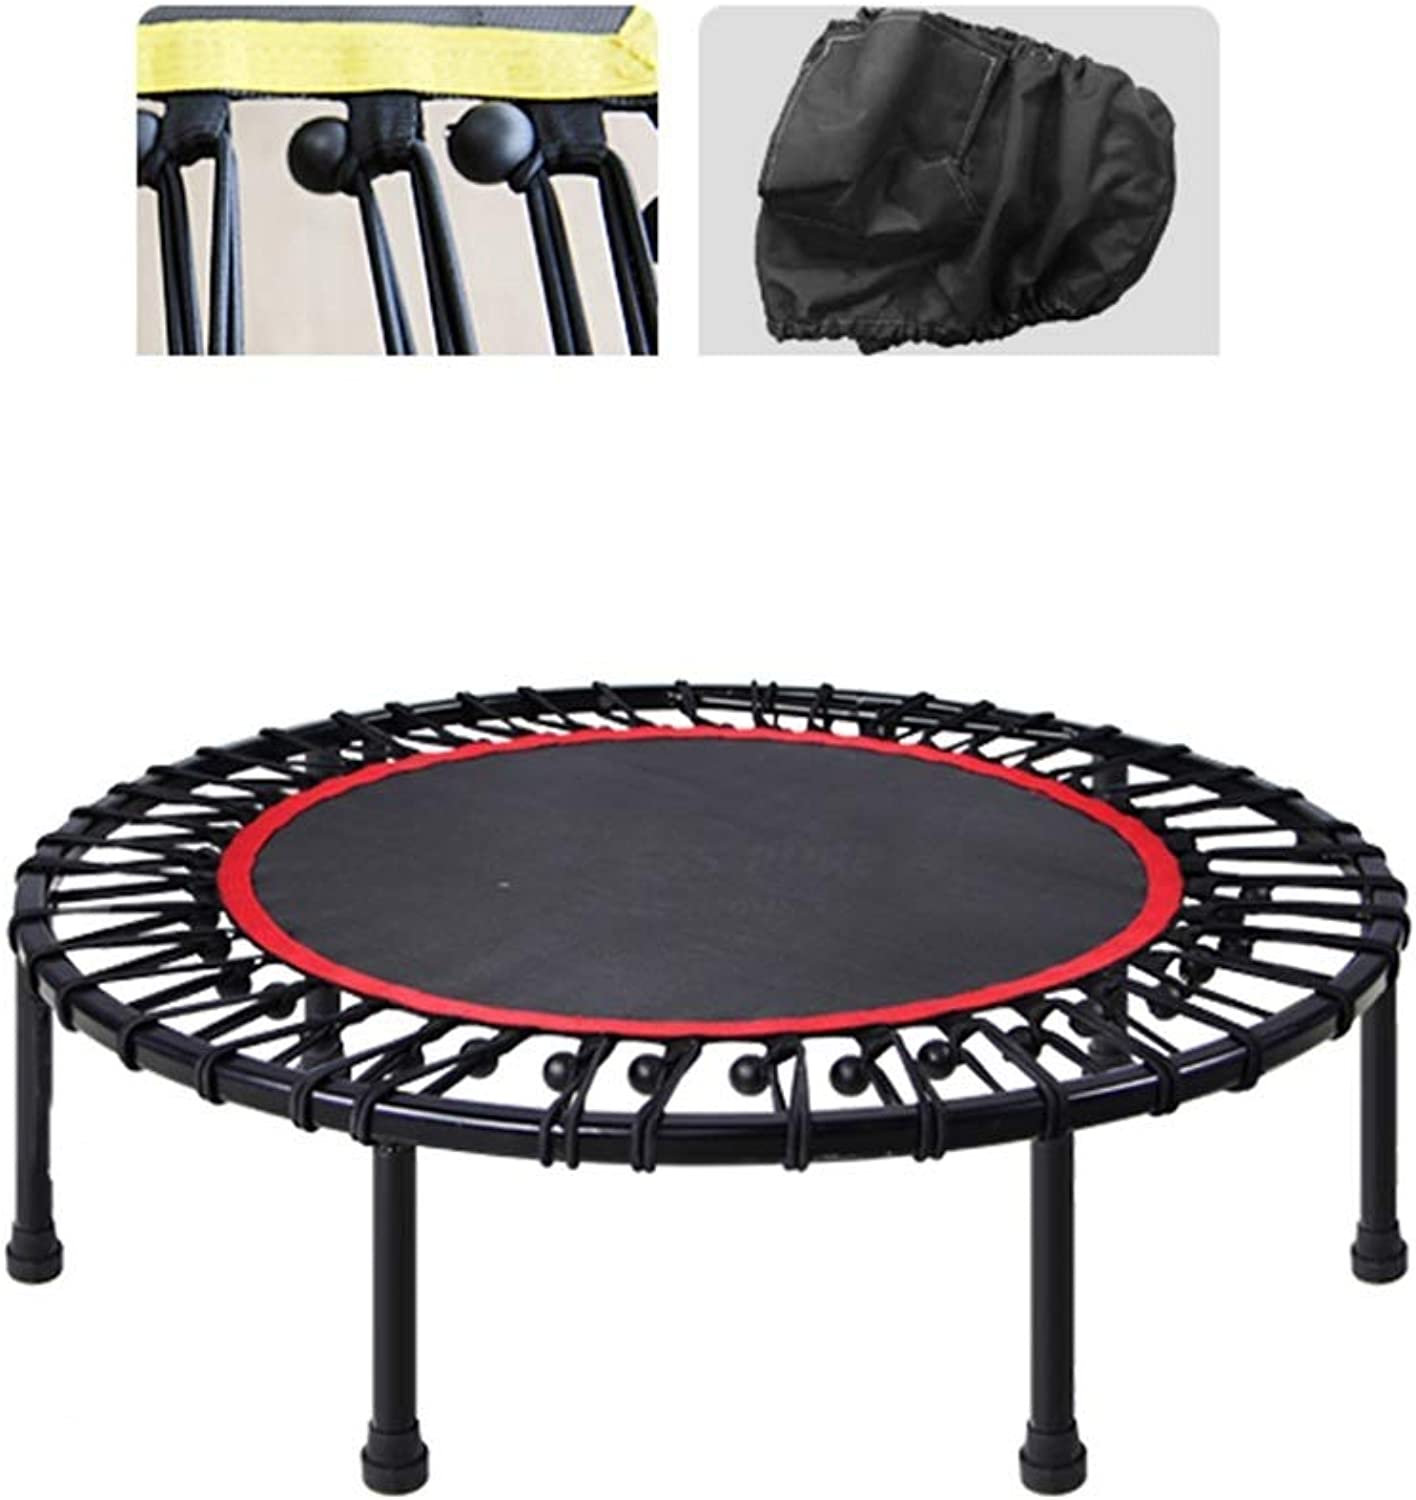 Fitness Trampoline, with Handrail Indoor Training Safety Elastic Jumping Fat Burning for Adult